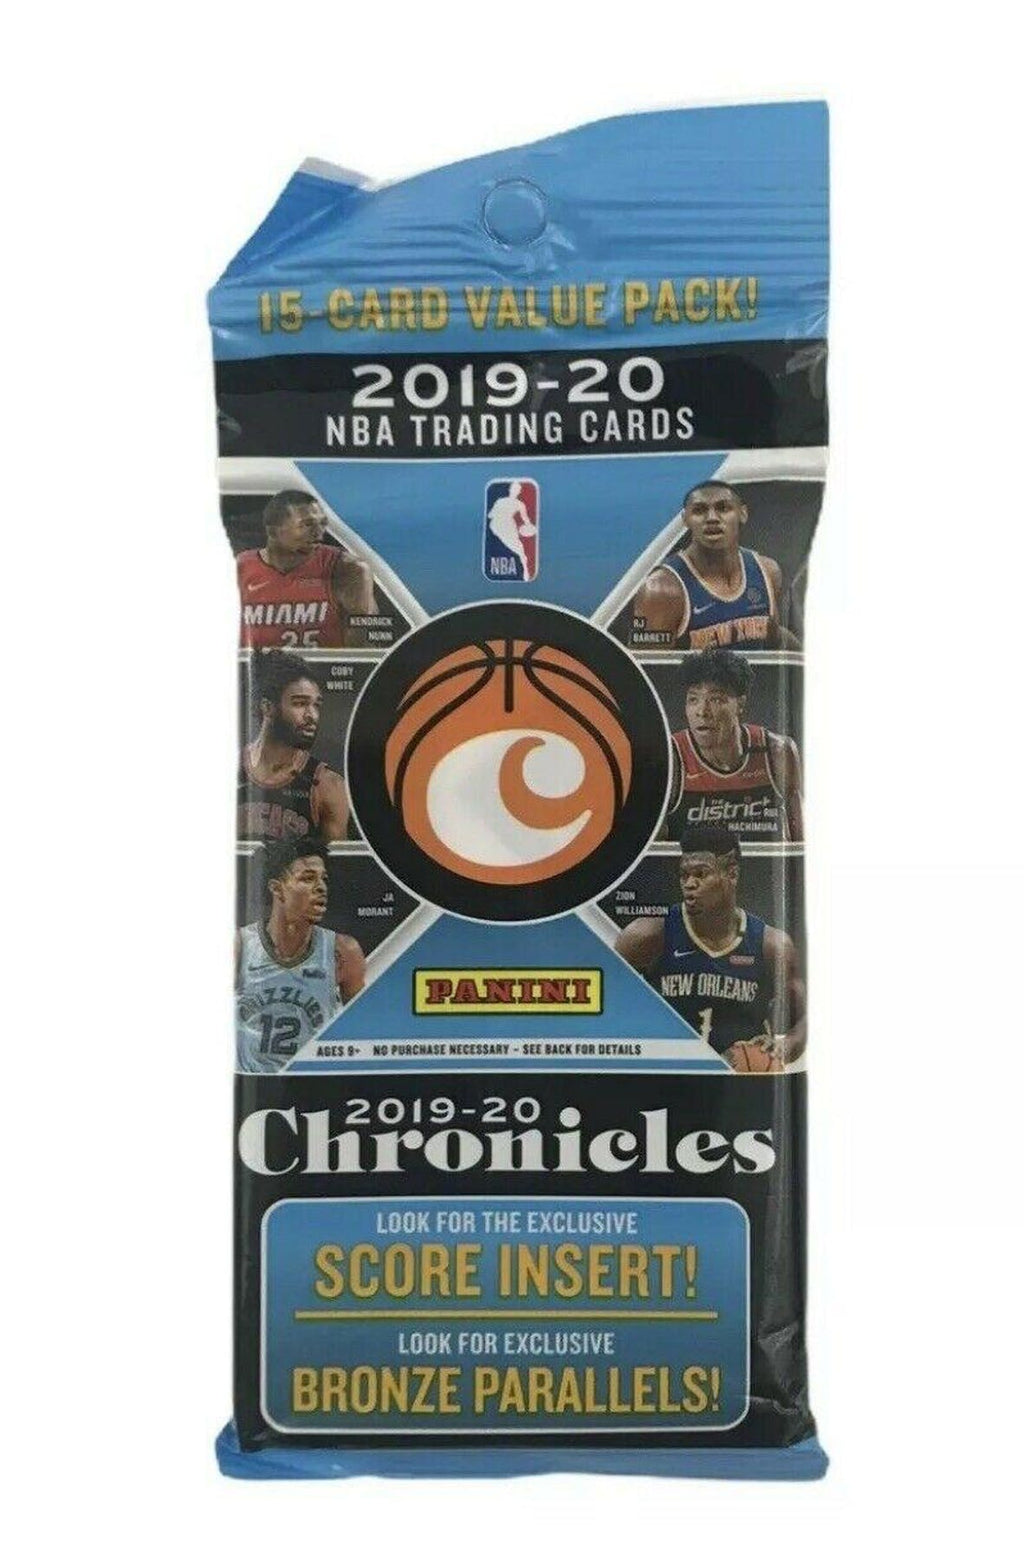 2019/20 Panini Chronicles Fat Pack